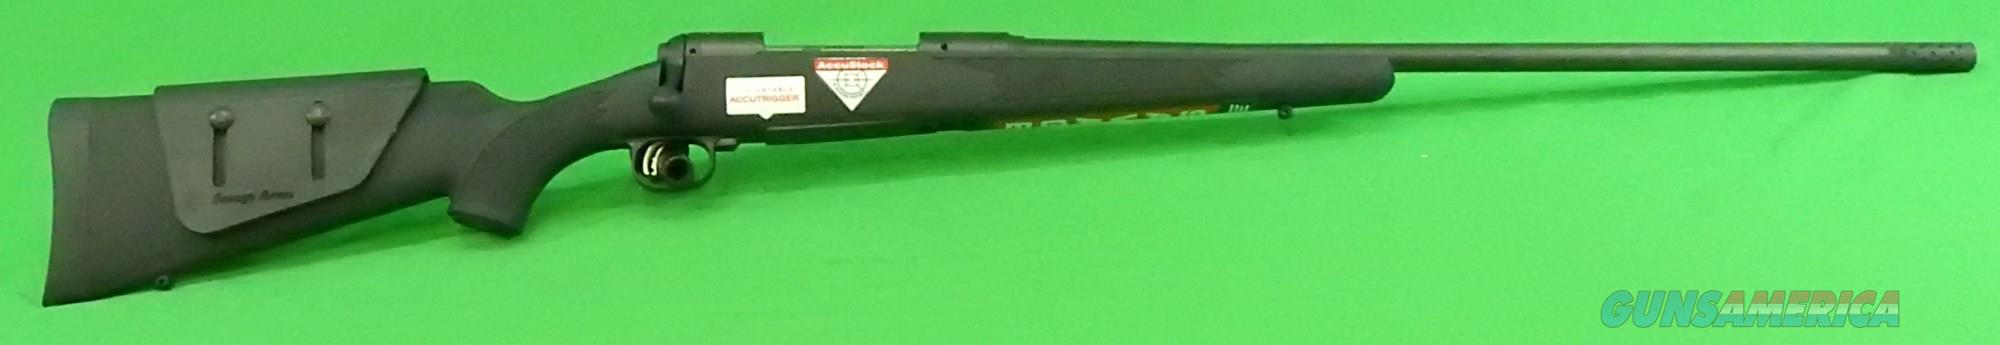 111 Long Range Hunter 300 Win Mag 26In 18899  Guns > Rifles > Savage Rifles > 11/111